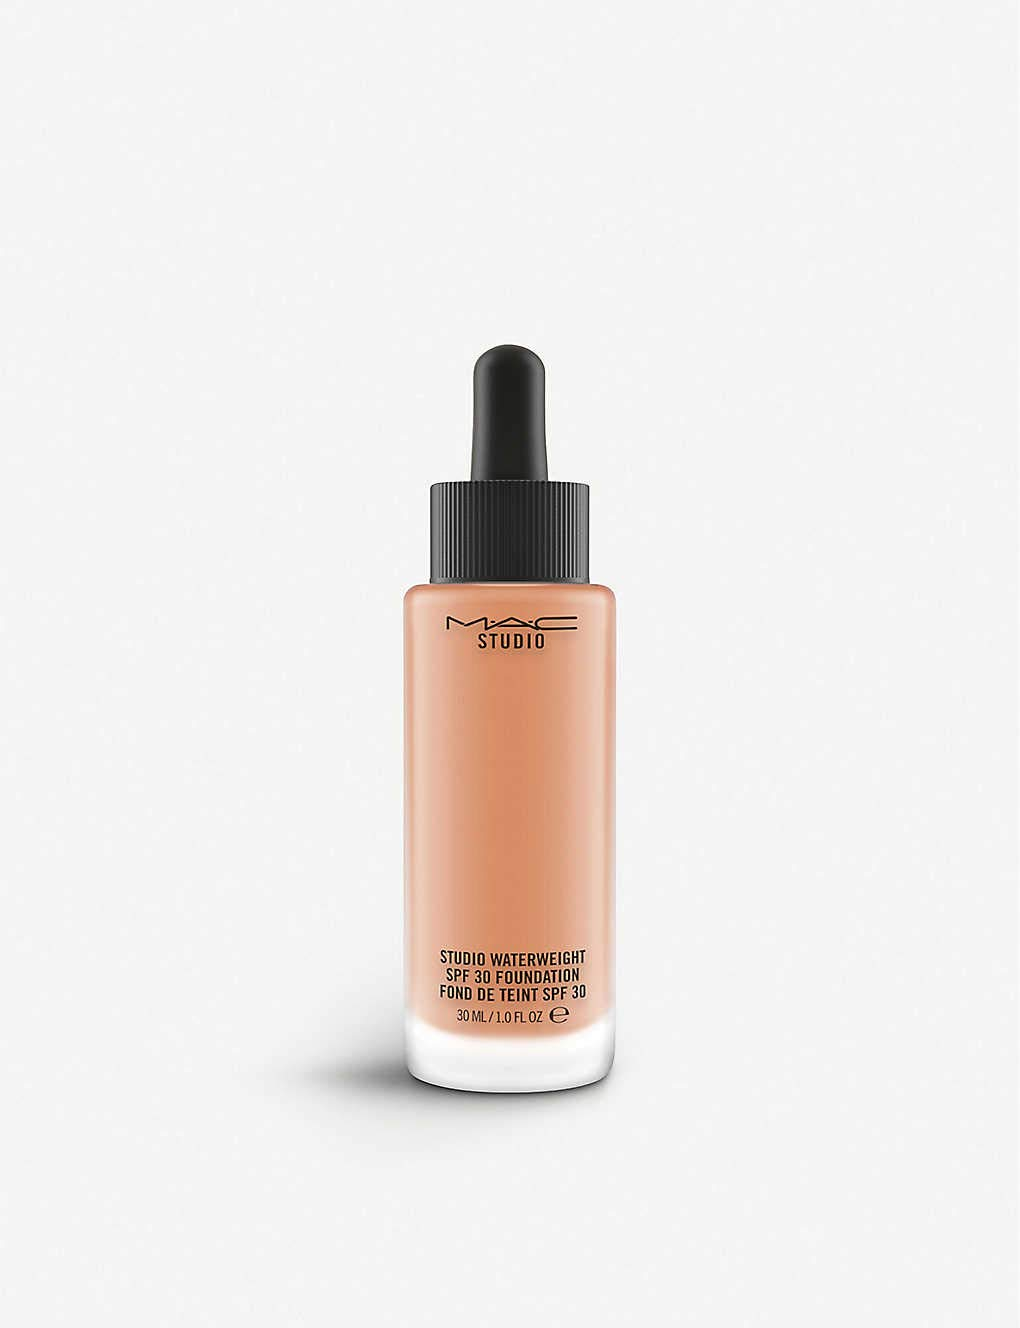 M.A.C Studio Waterweight SPF Fresno Mall High material ml Foundation-NW35-30 30